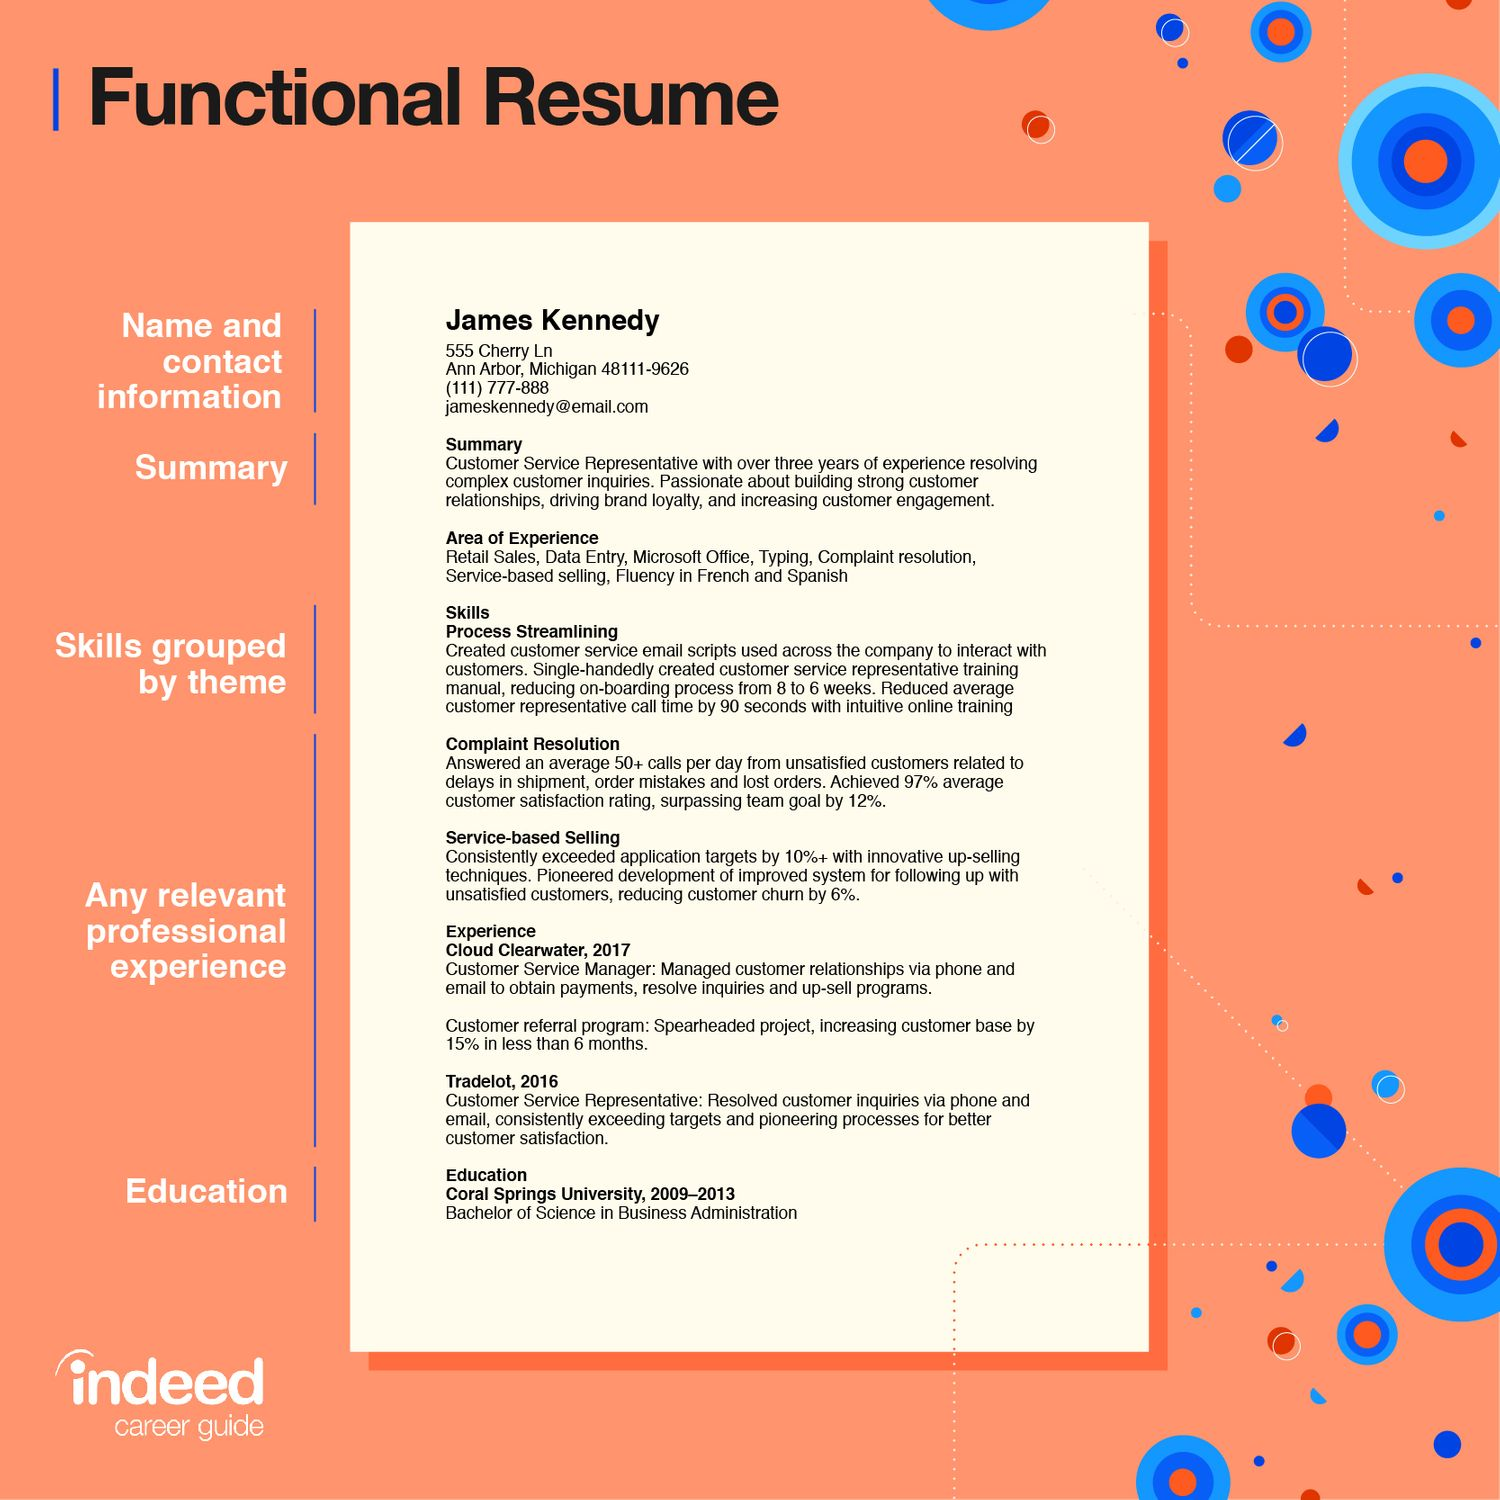 functional resume definition tips and examples indeed best samples resized area manager Resume Best Functional Resume Samples